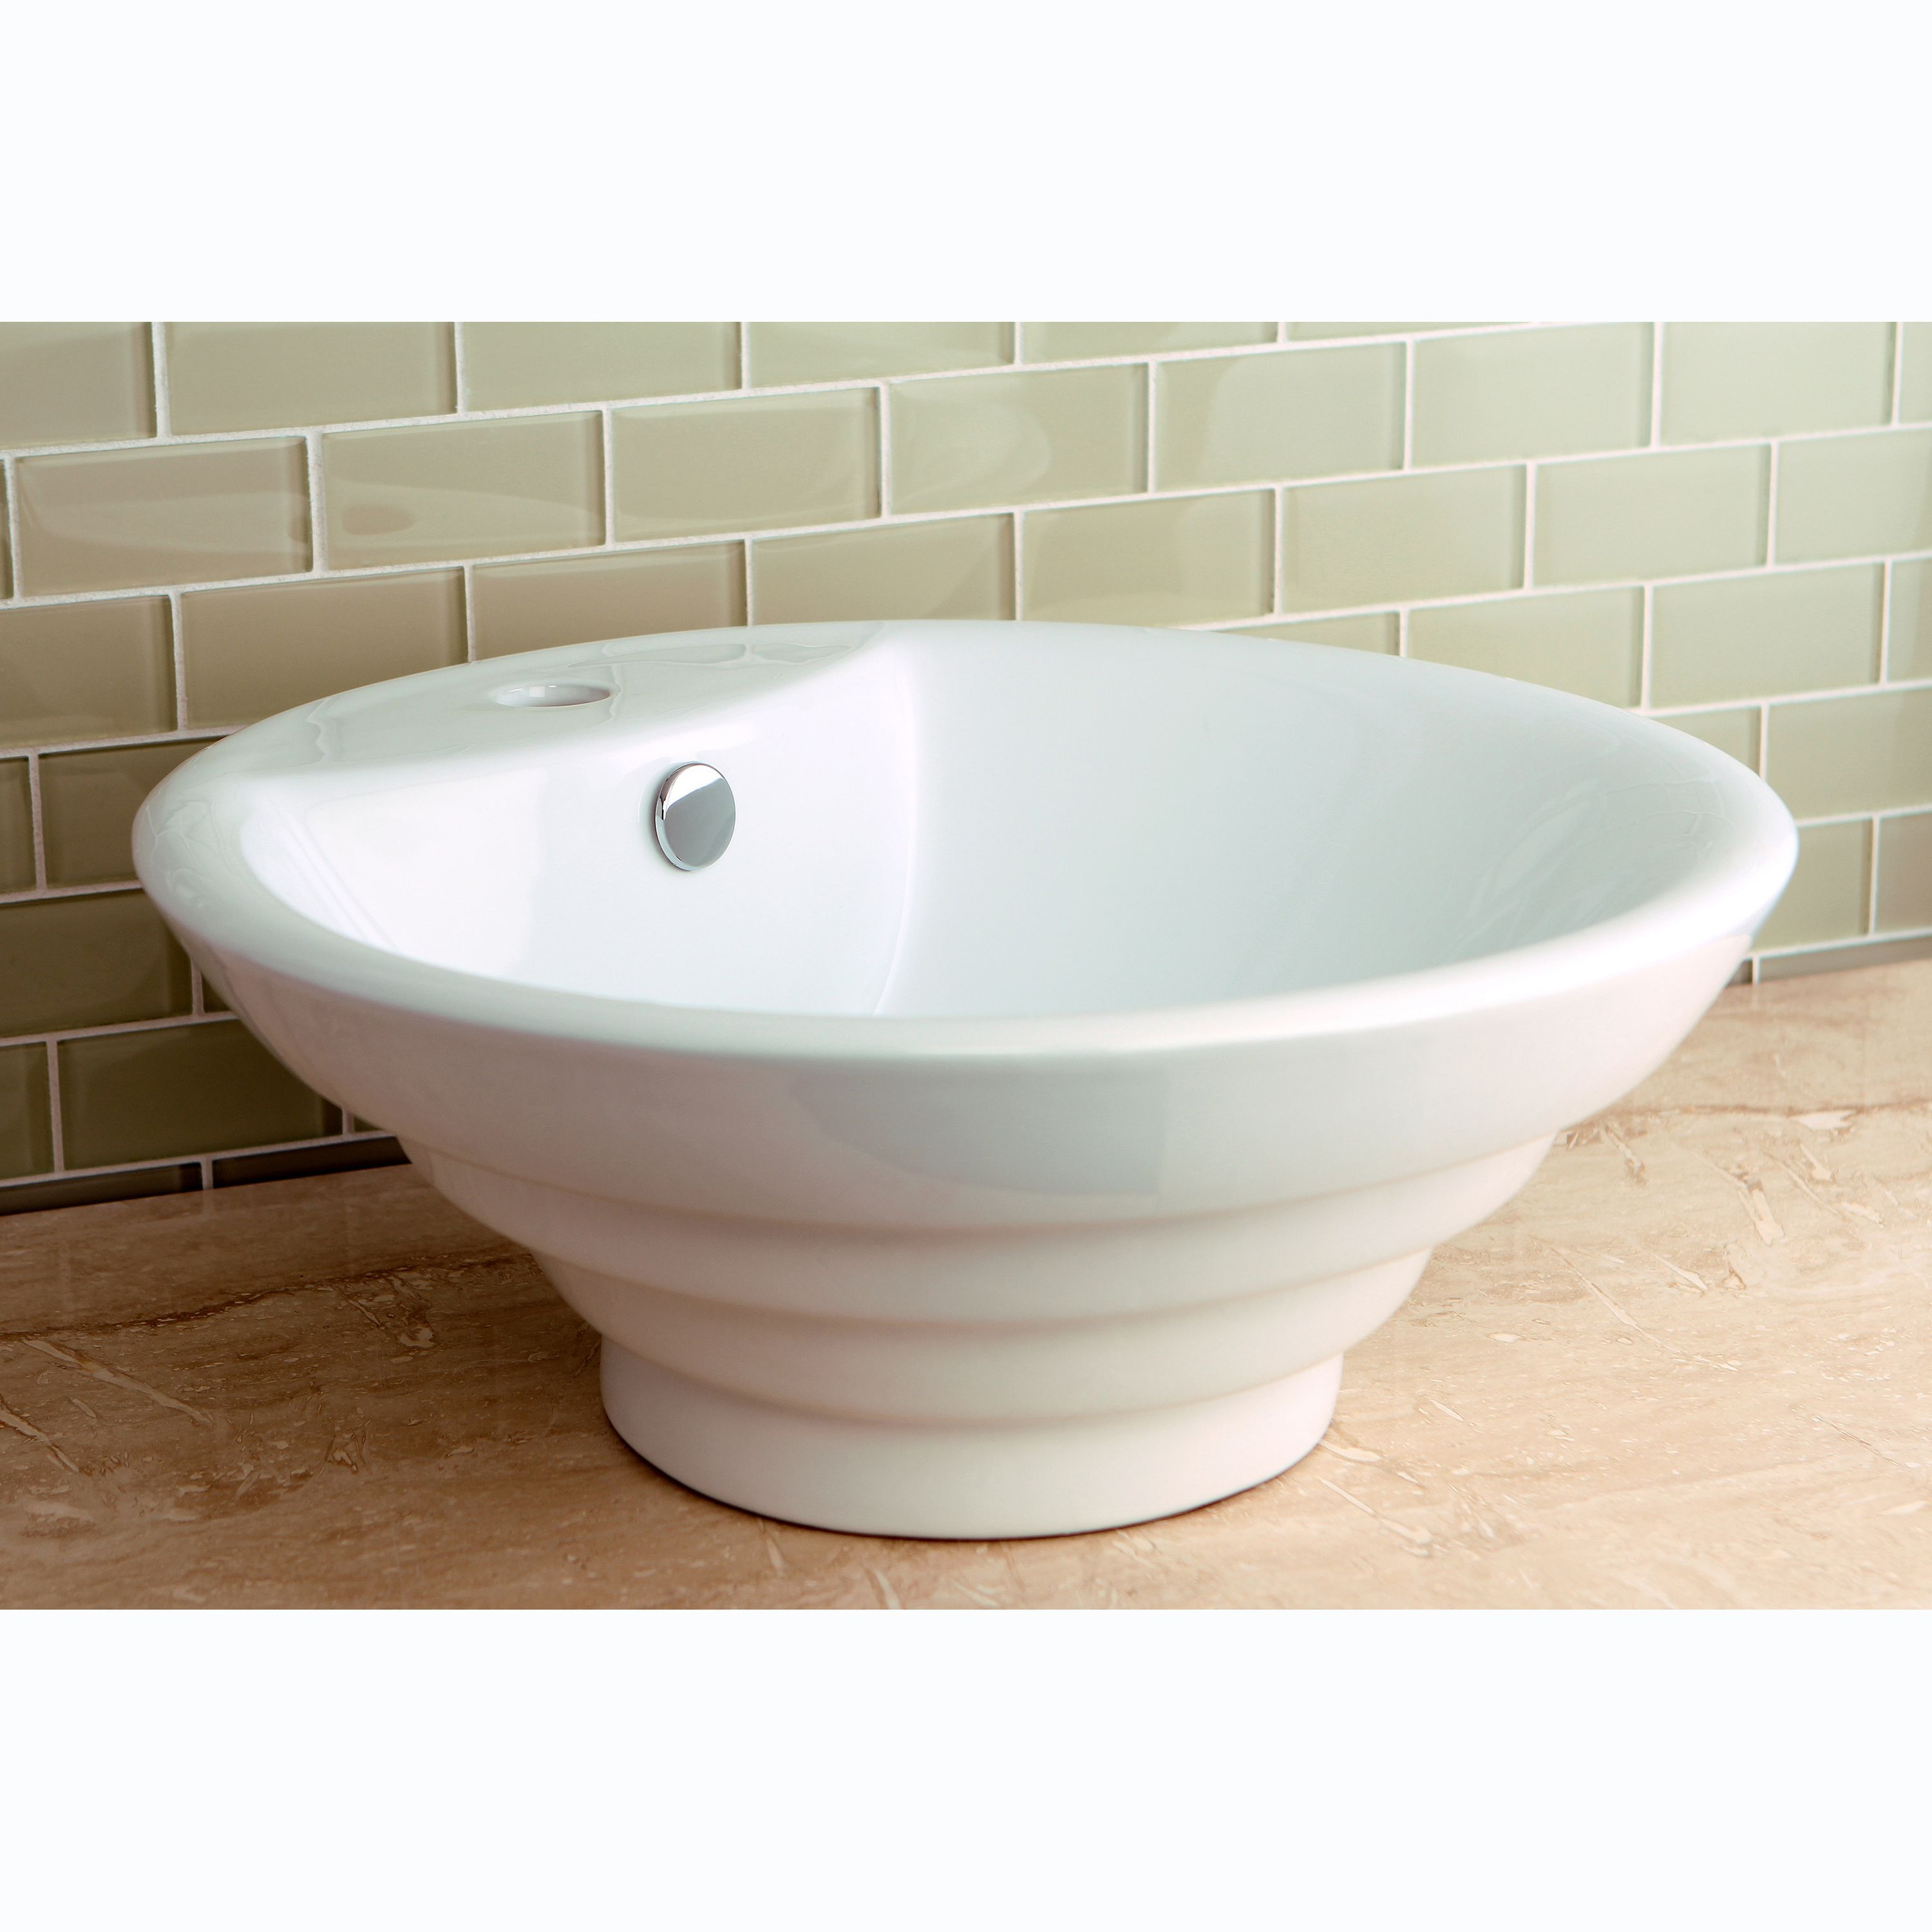 Beautify your bathroom with this modern round vessel sink